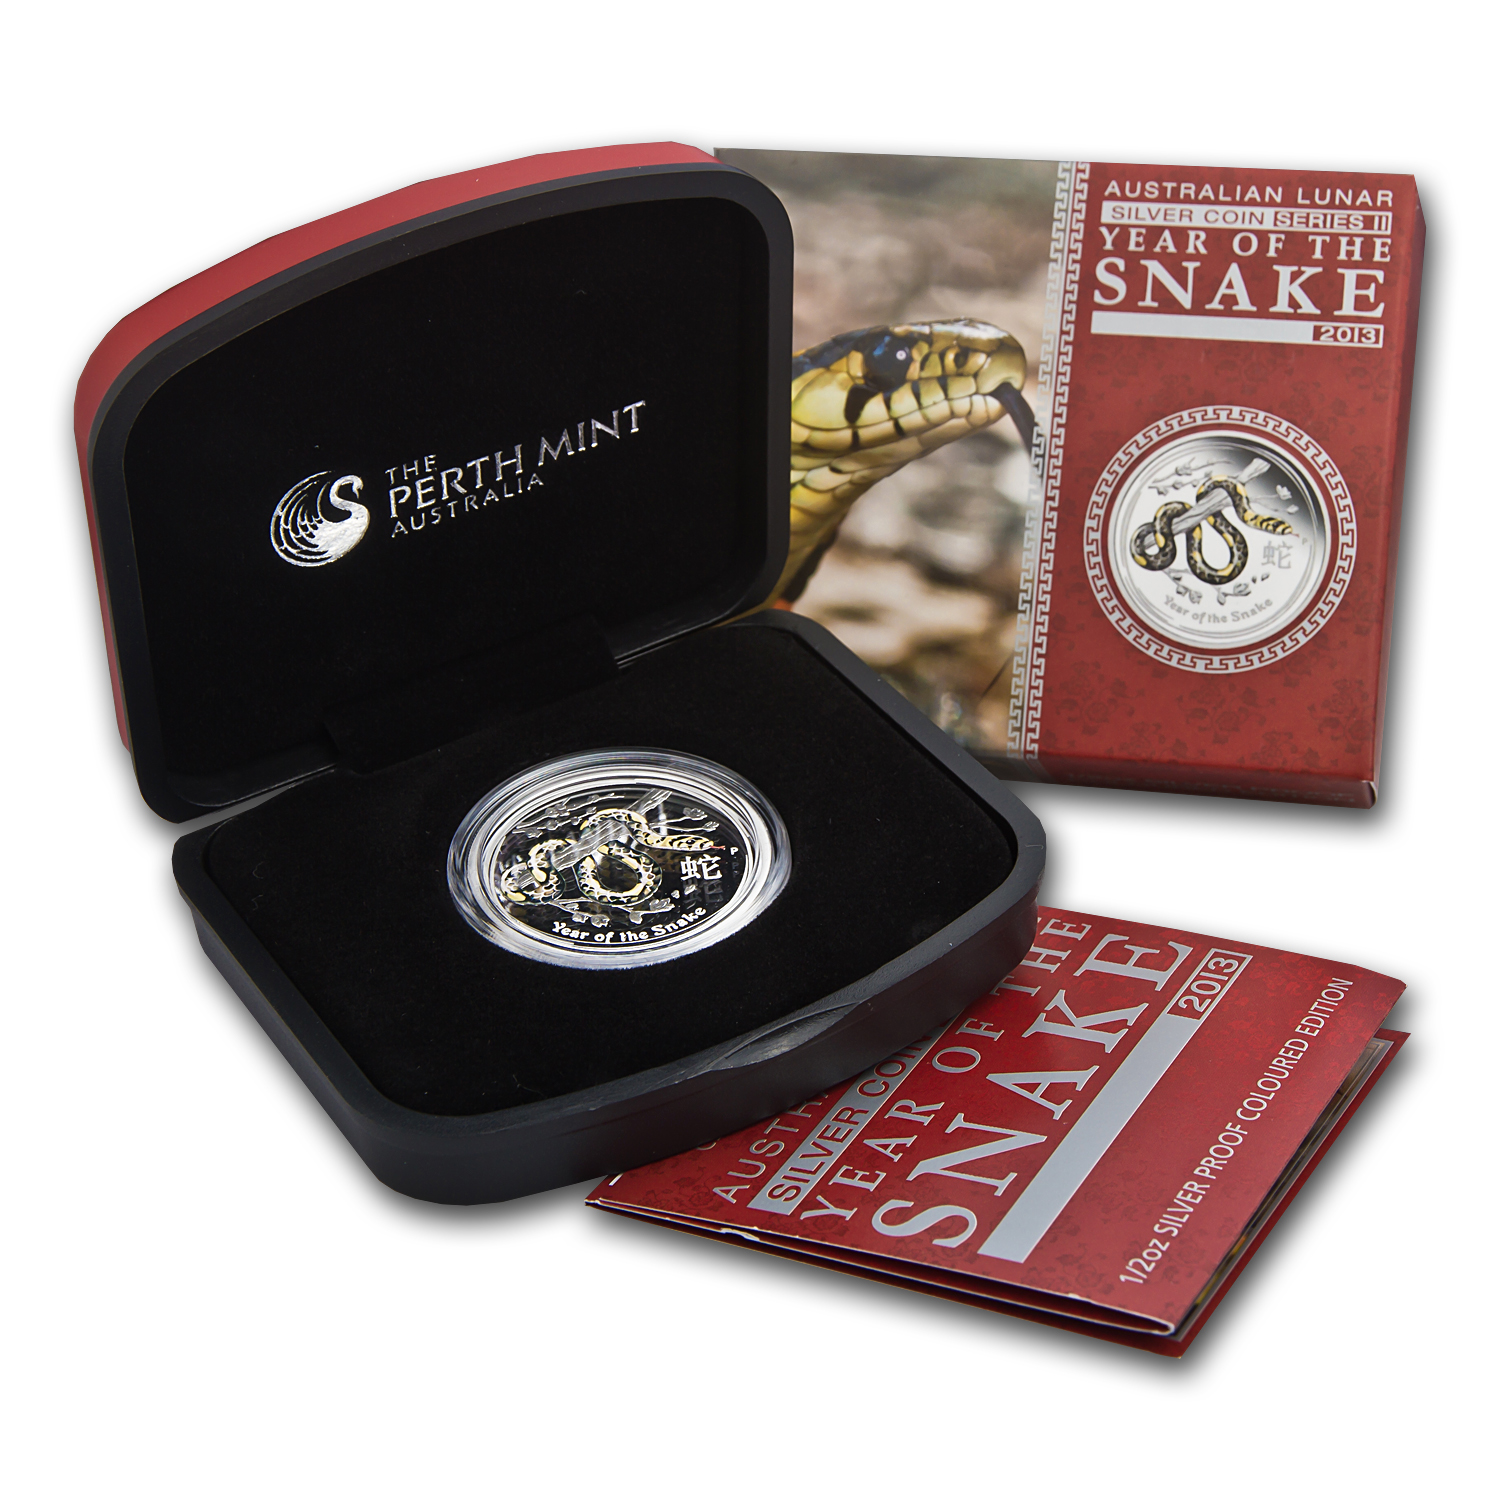 2013 1/2 oz Silver Year of the Snake Proof Colorized Coin